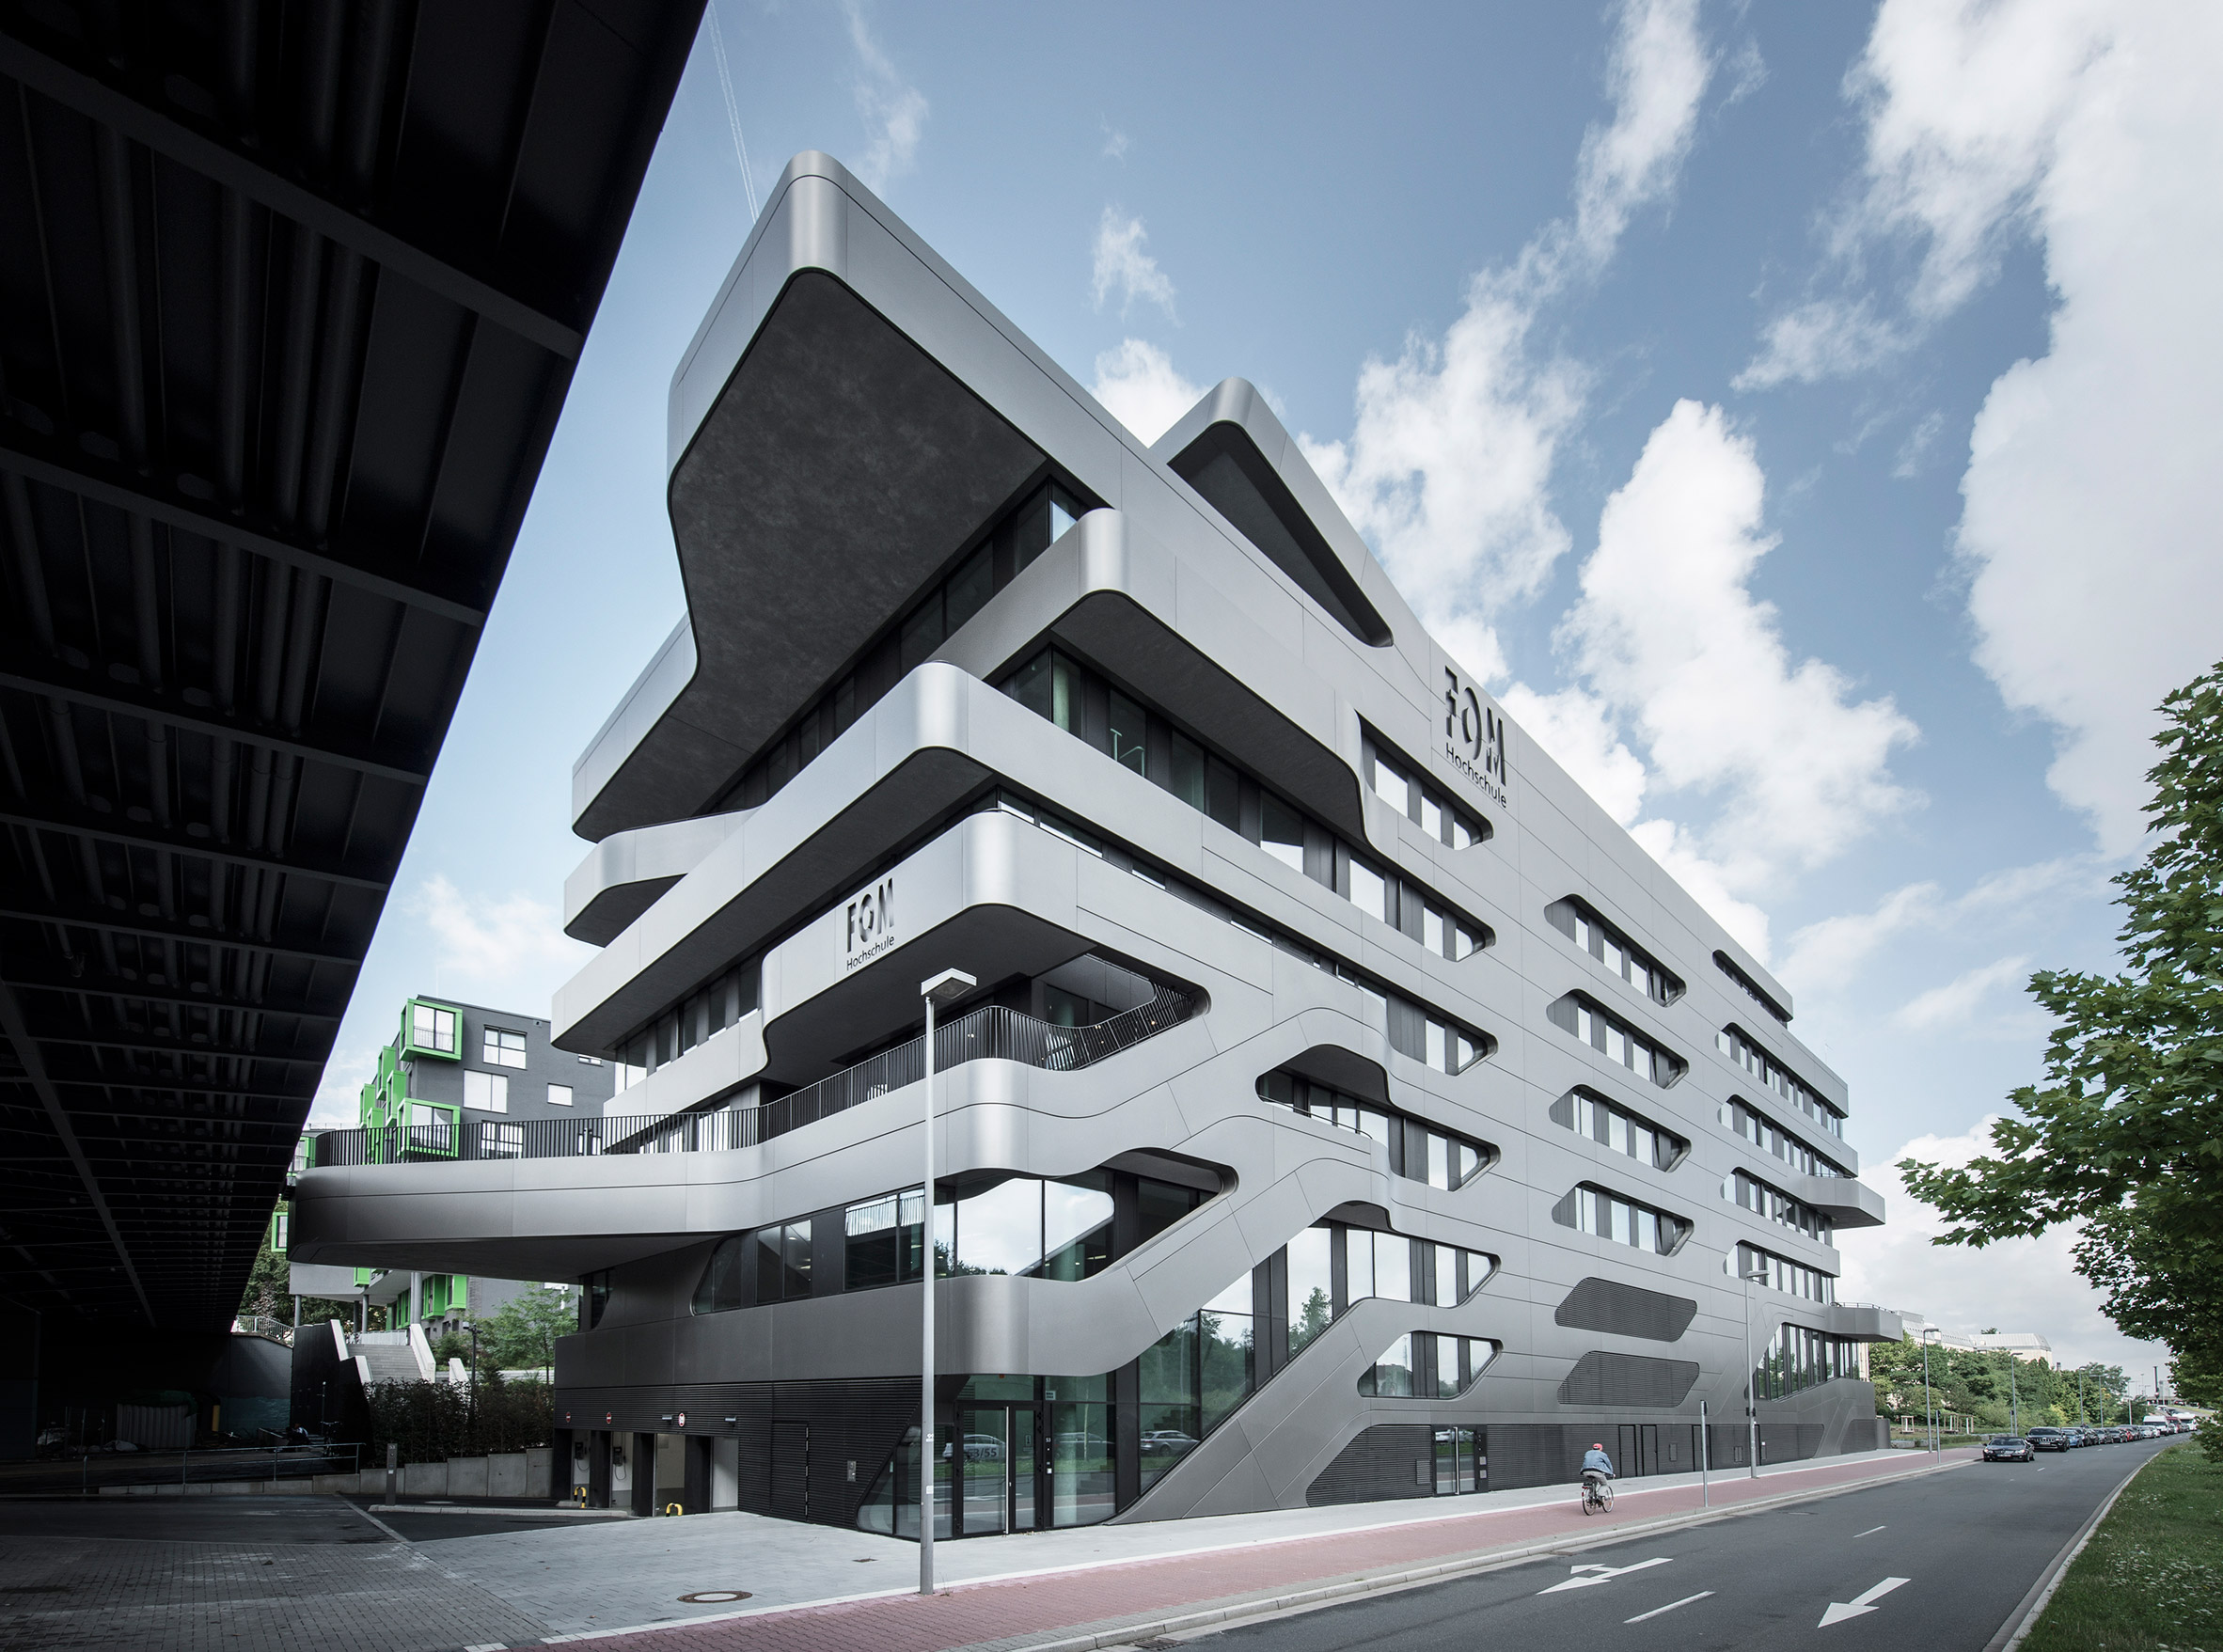 Jürgen Mayer H's FOM Hochschule building features bulging balconies and seamless stairs